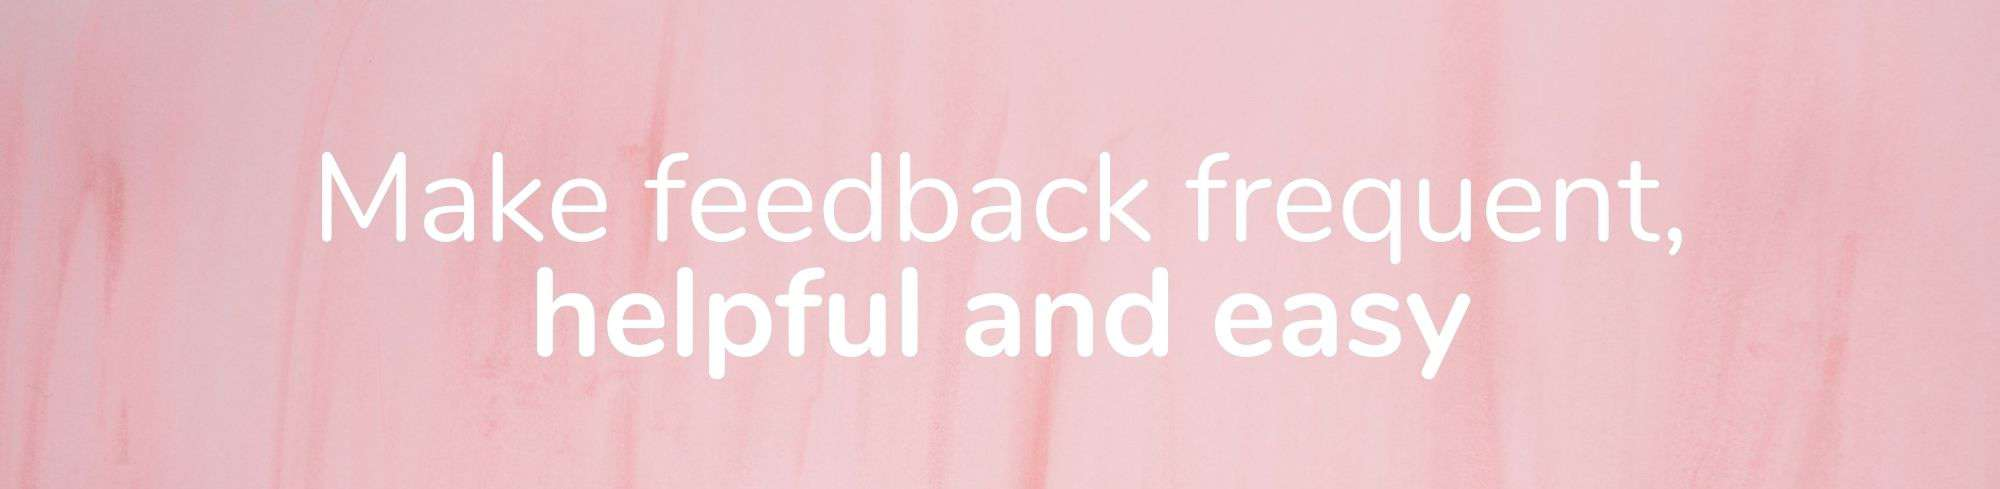 Make feedback frequent, helpful and easy